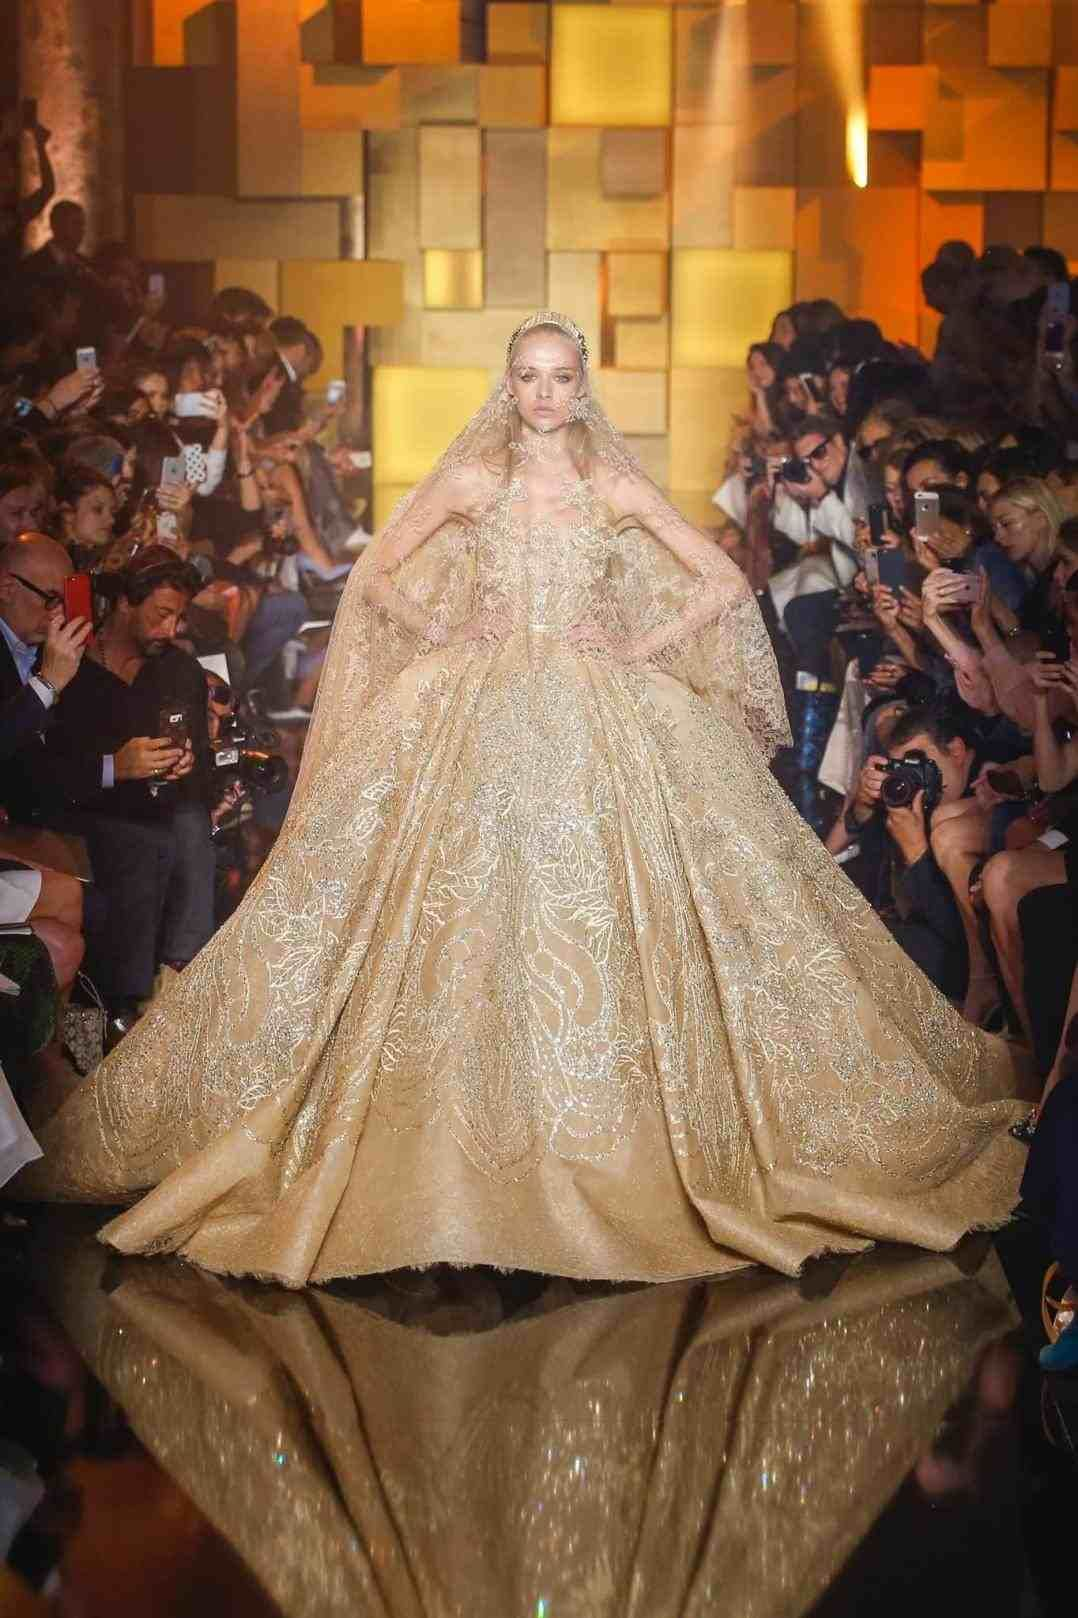 Most Expensive Wedding Dress.Most Expensive Wedding Gown In The World Saddha